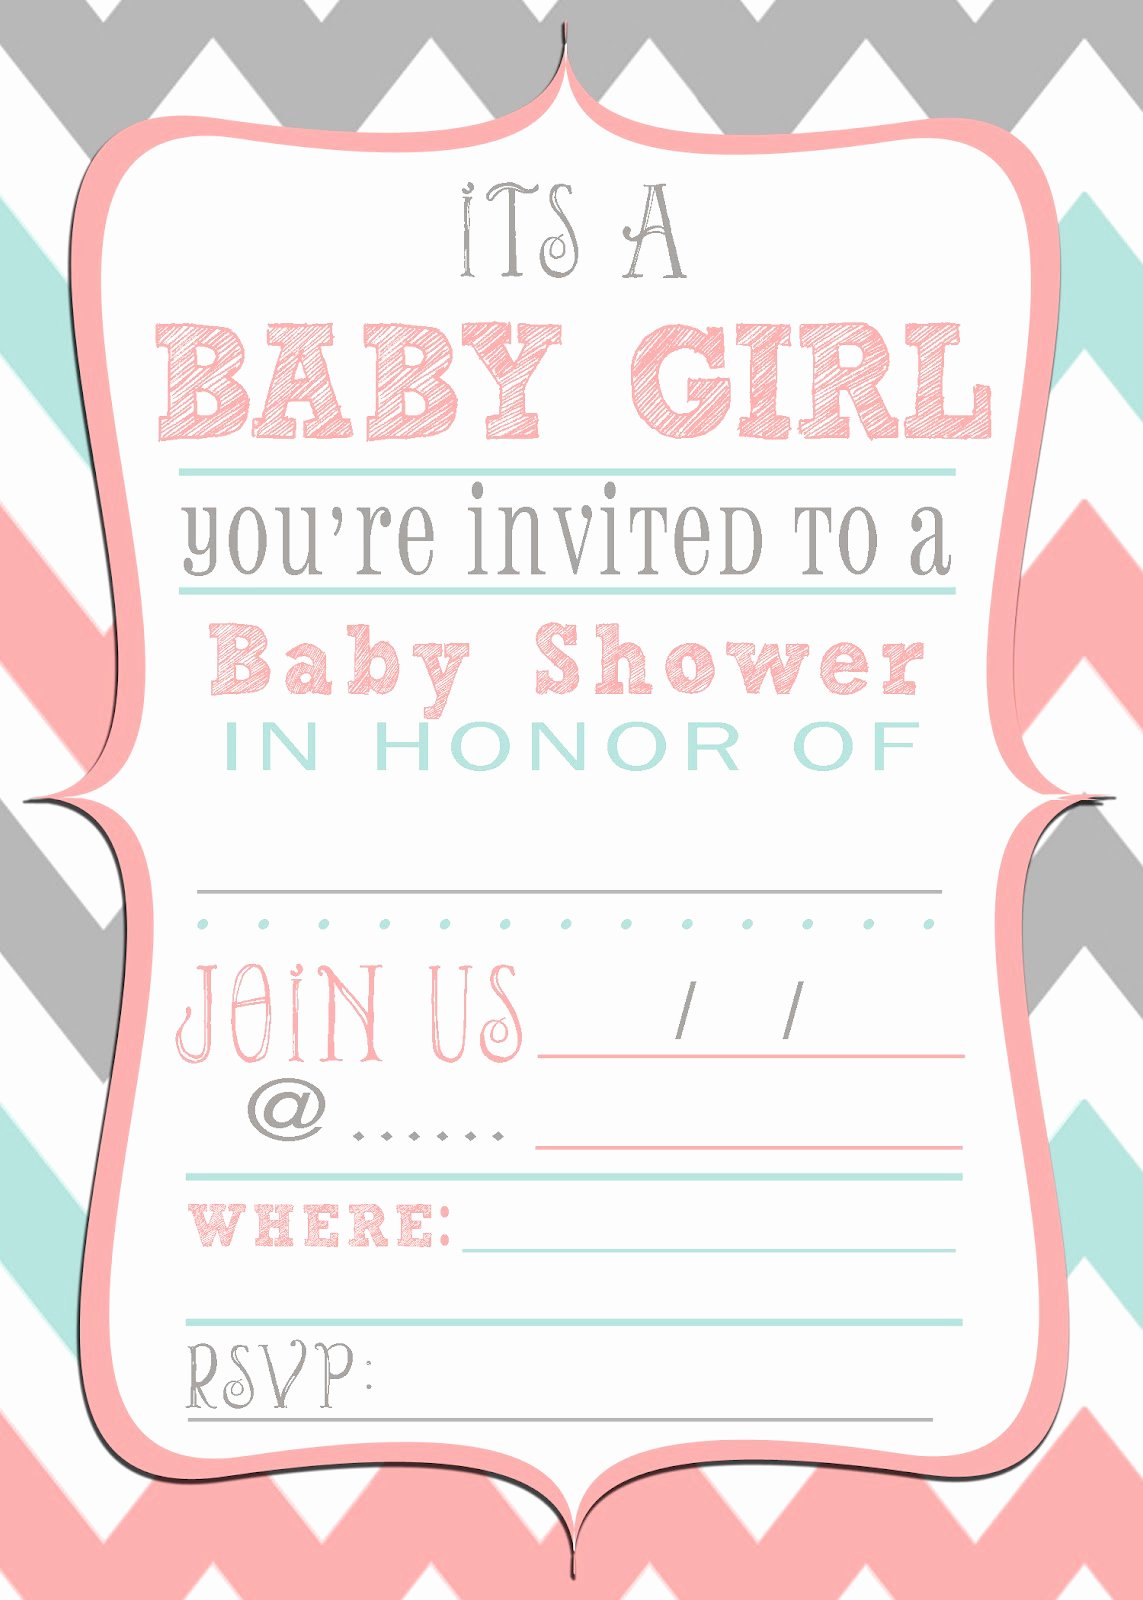 Baby Shower Template Free Best Of Mrs This and that Baby Shower Banner Free Downloads